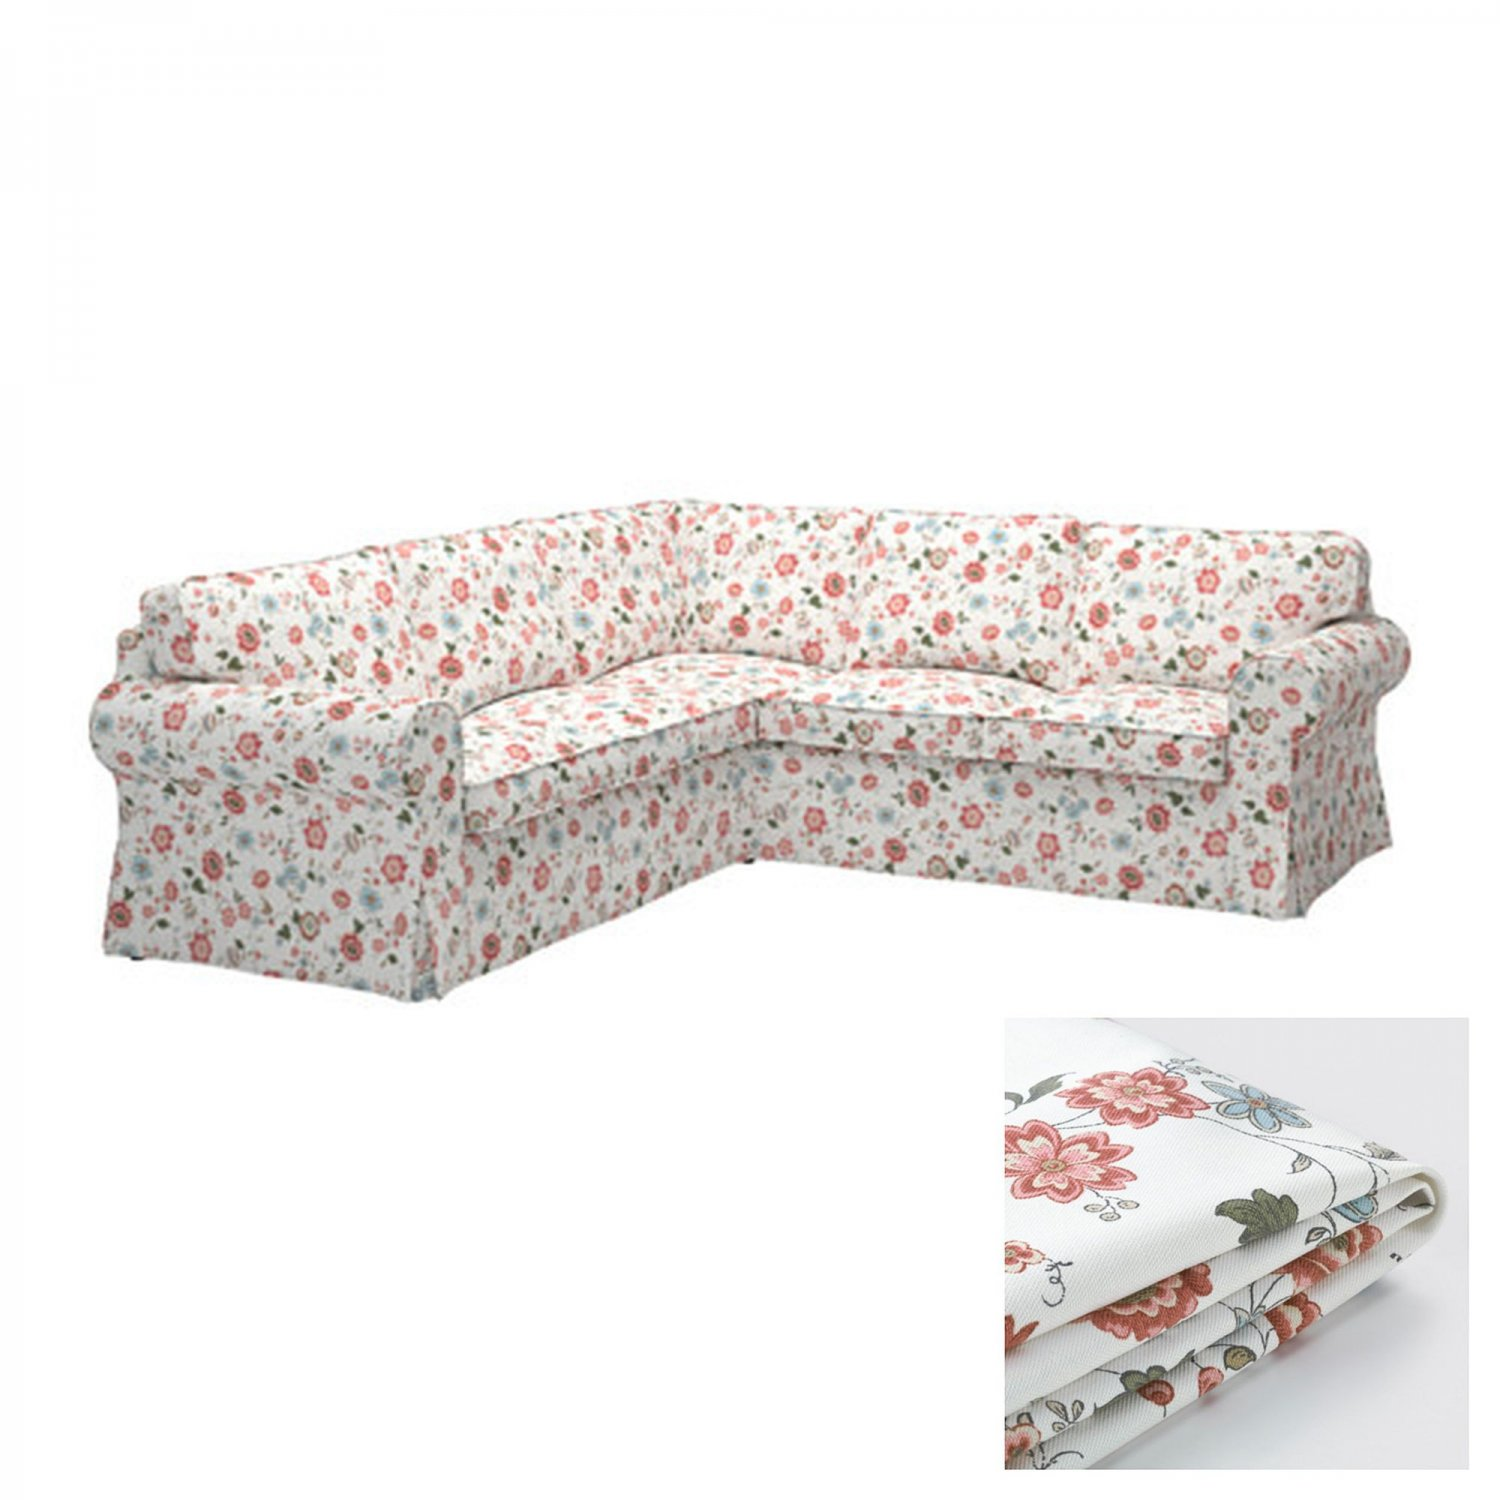 Ikea Sofa Round Rock Ikea Ektorp 2 2 Corner Sofa Cover Slipcover Videslund Multi Floral 4 Seat Sectional Cover